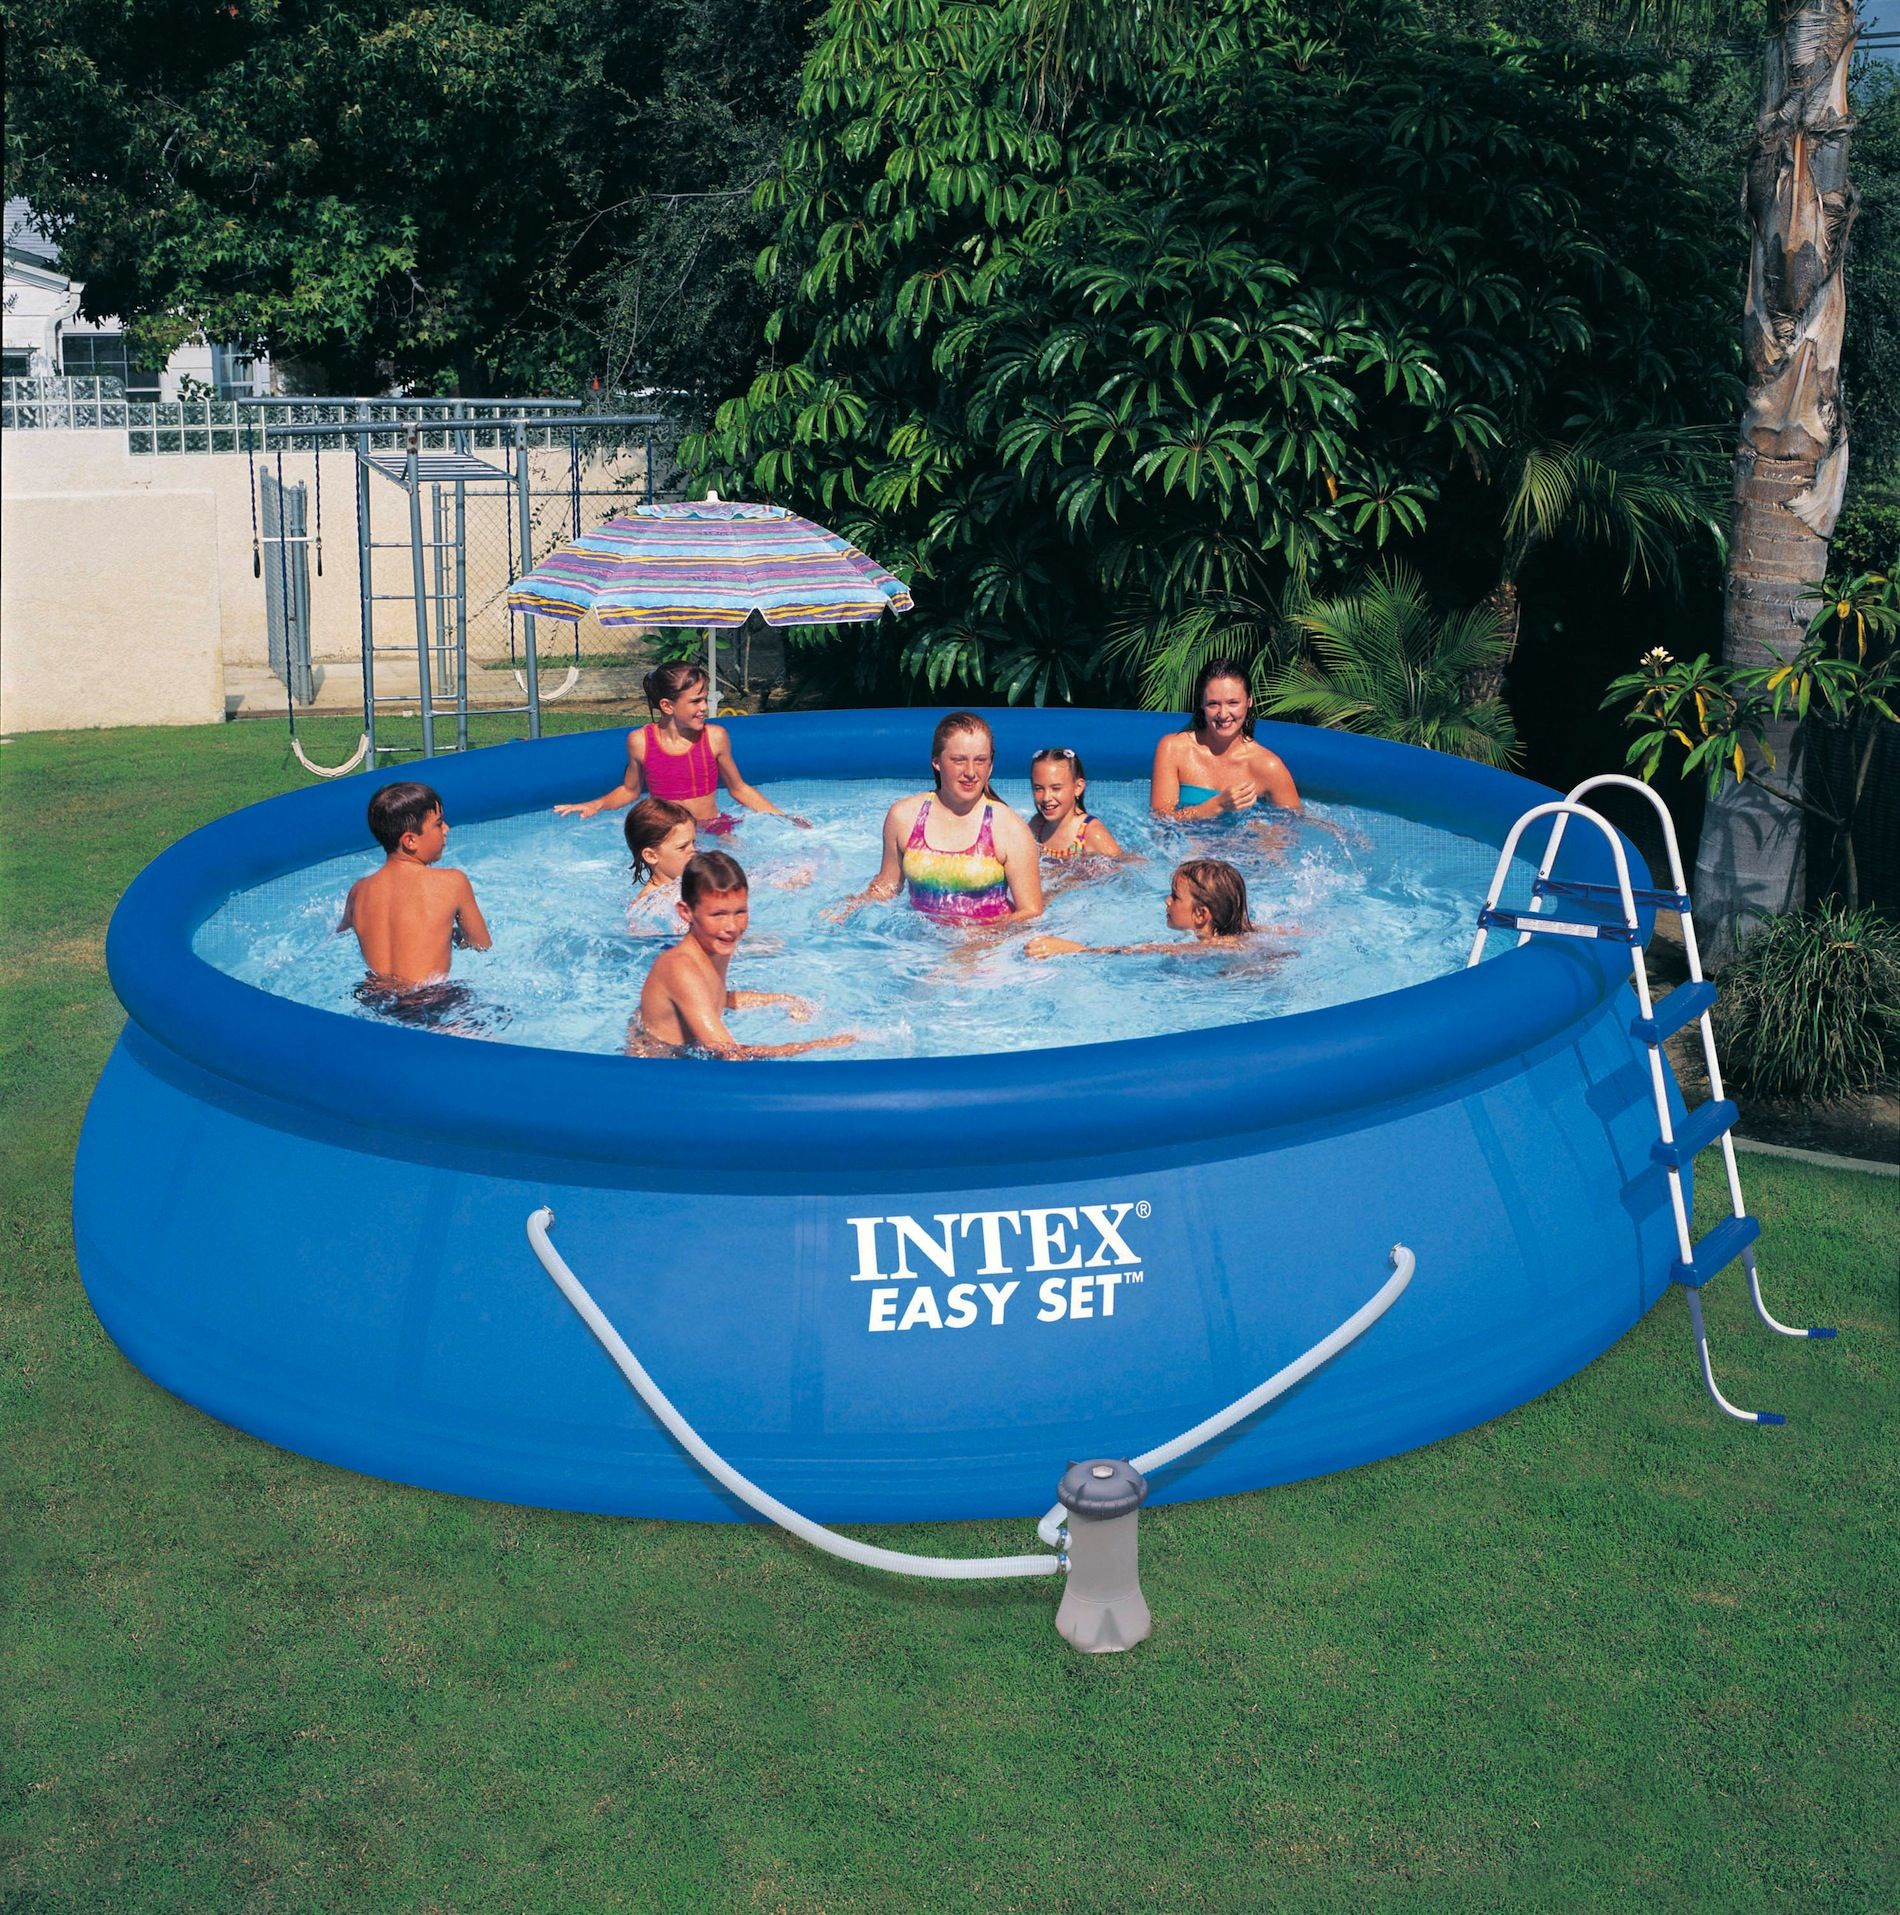 "Intex 16' X 42"" Easy Set Pool (W/ Filter Pump, Ladder ... avec Piscine Intex 3.66"